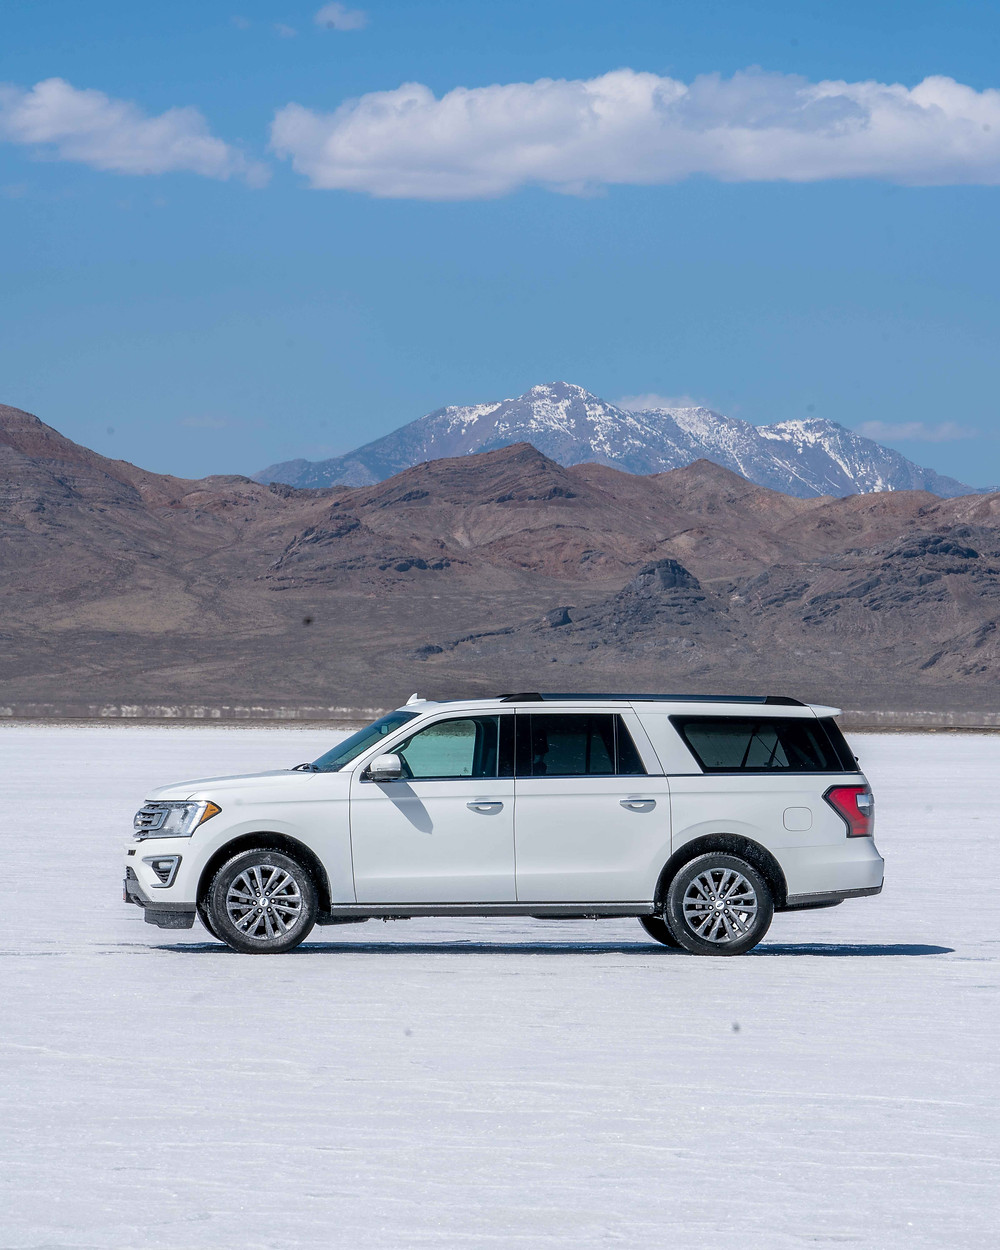 White Ford Expedition in a salt flat with snow capped mountains in the background